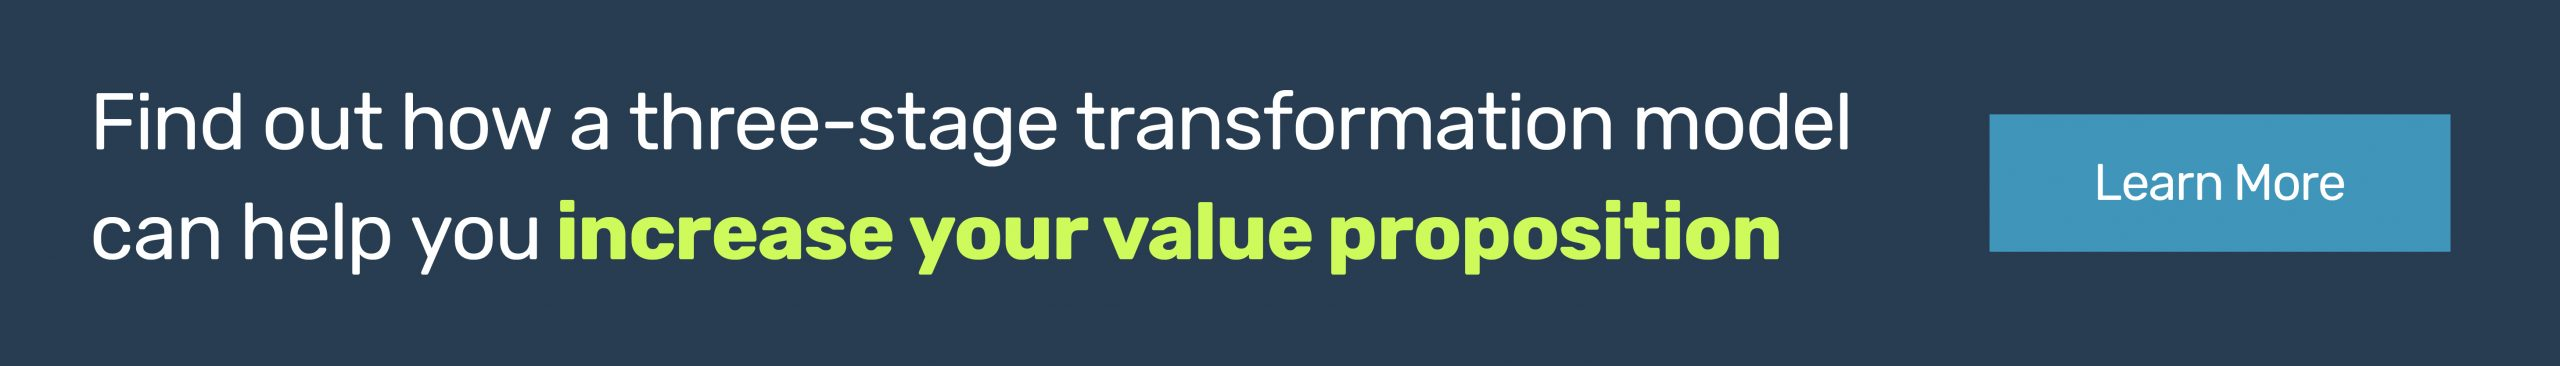 Button: Find out how a three-stage transformation model can help you increase your value proposition